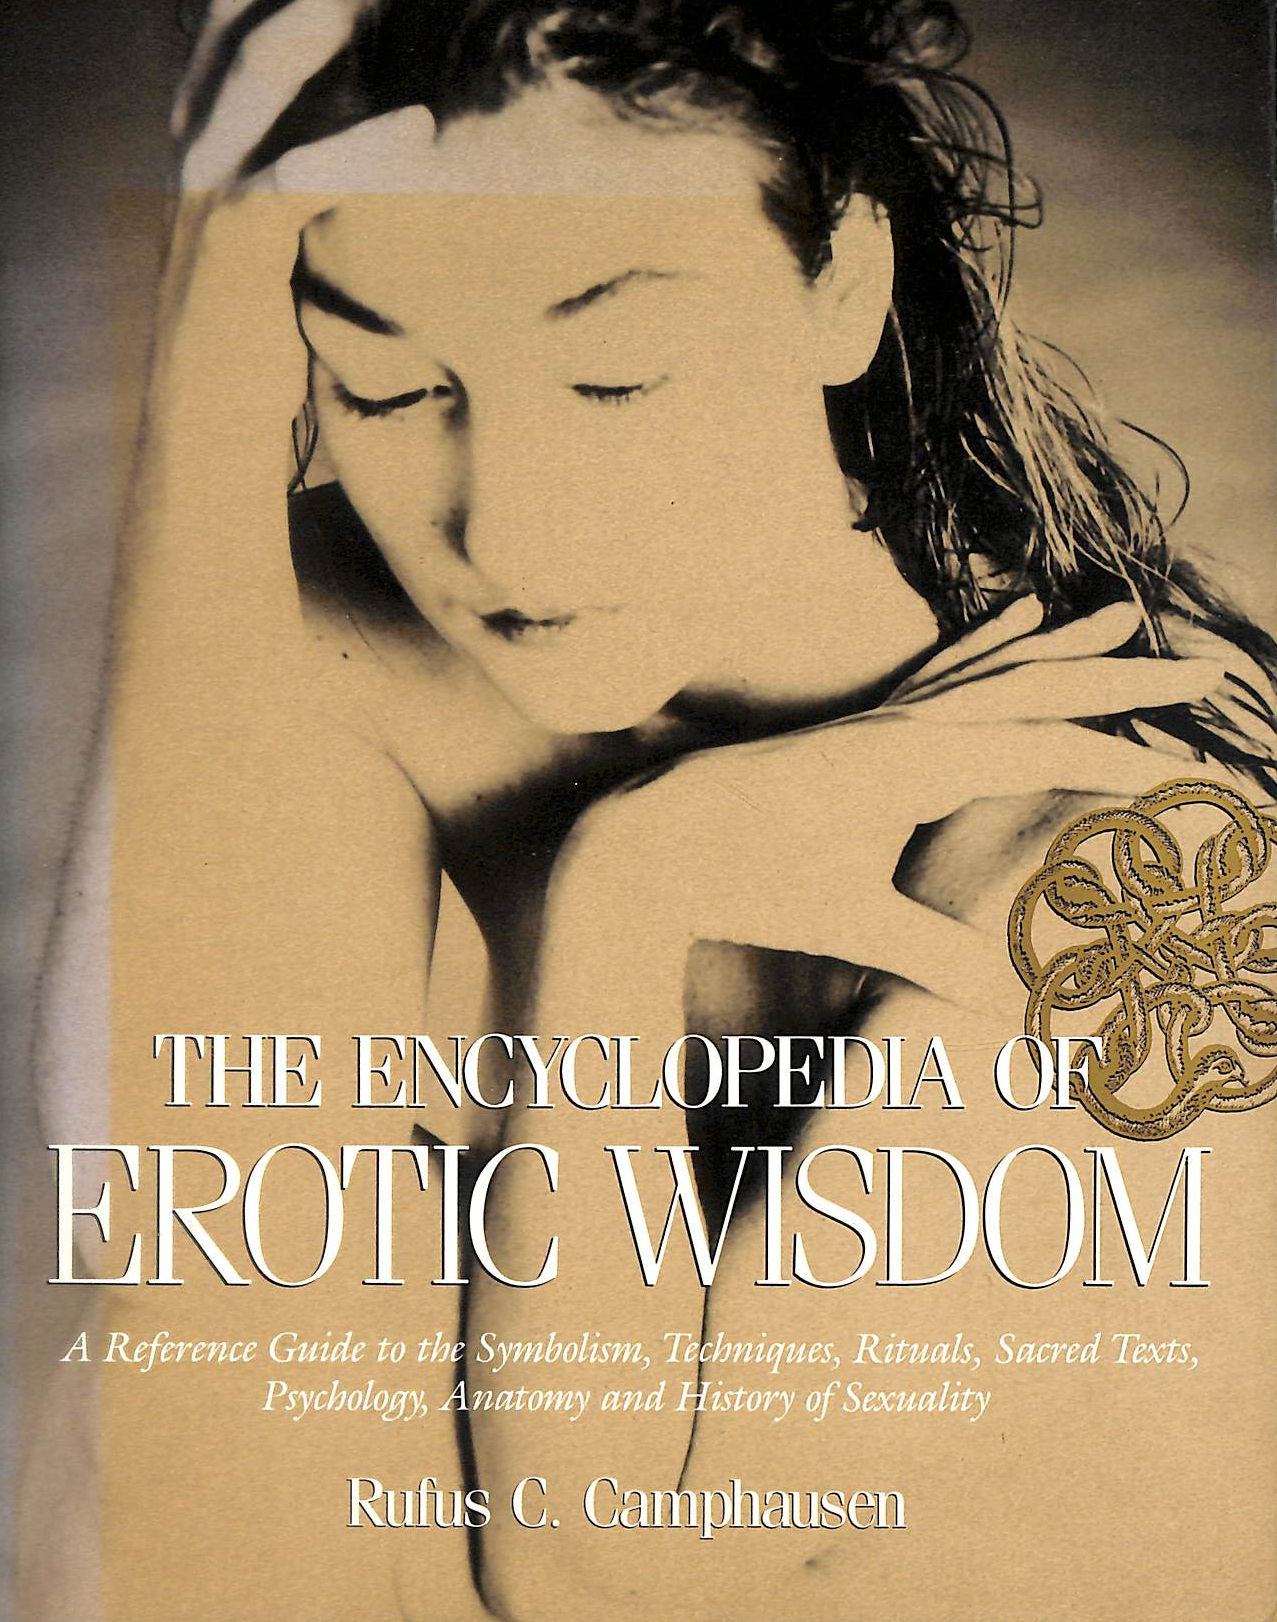 Image for Encyclopaedia Of Erotic Wisdom: A Reference Guide To The Symbolism, Techniques, Rituals, Sacred Texts, Anatomy And History Of Sexuality